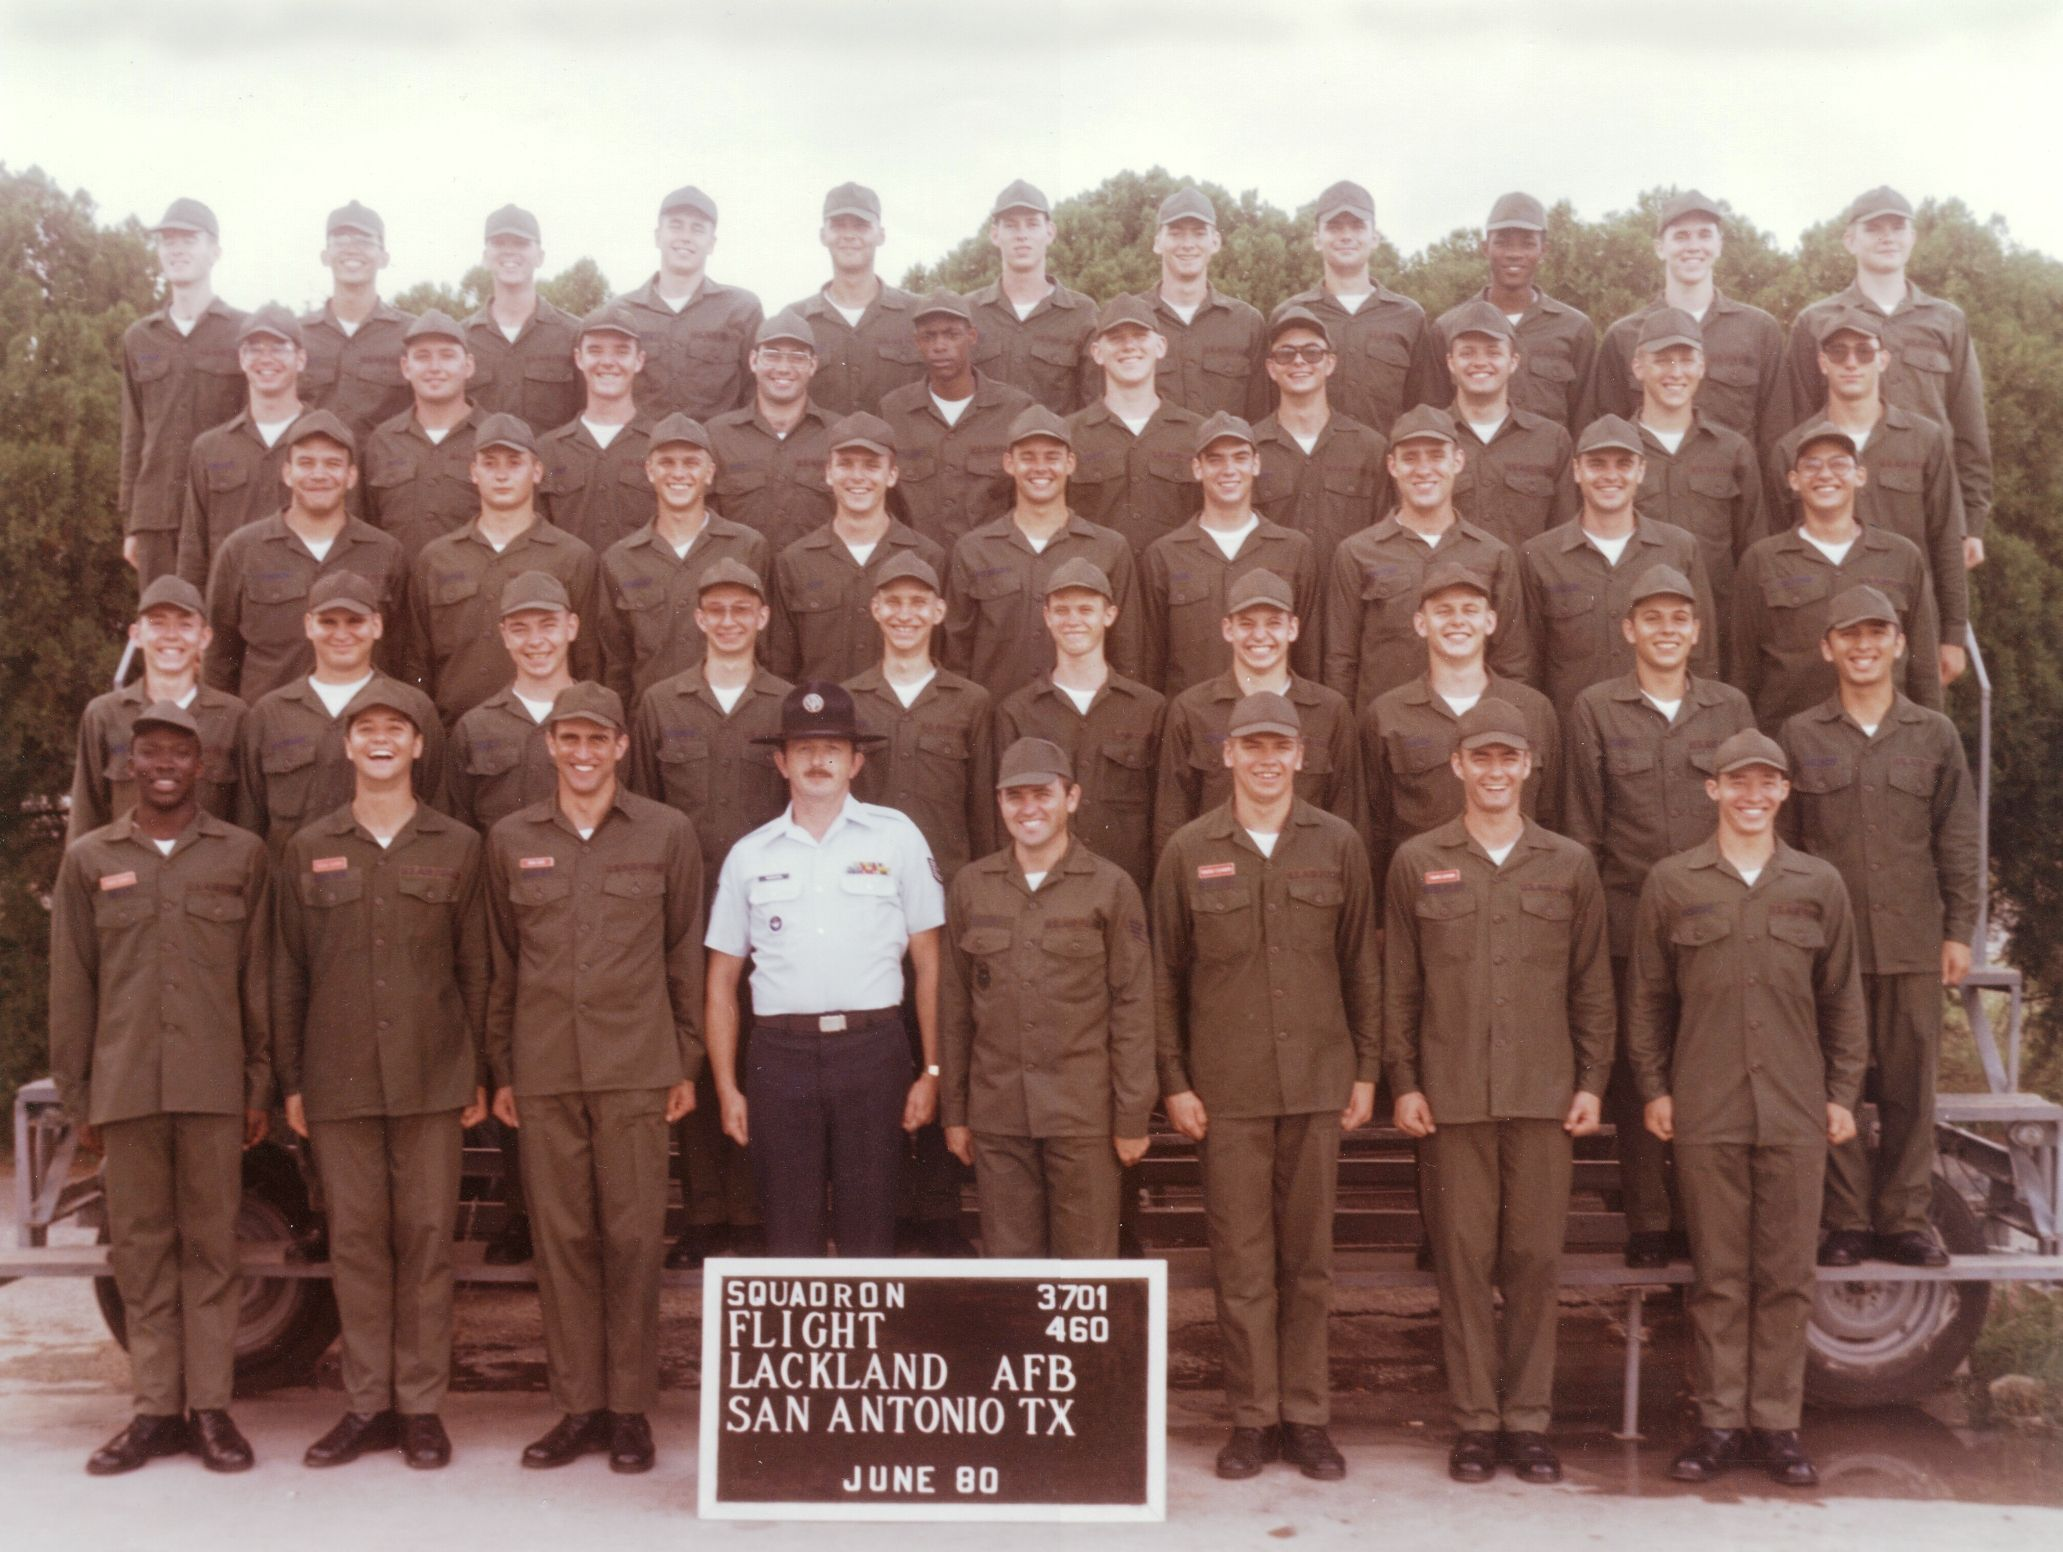 Air Force Basic Training, Lackland AFB, TX, Jun 80  I was there